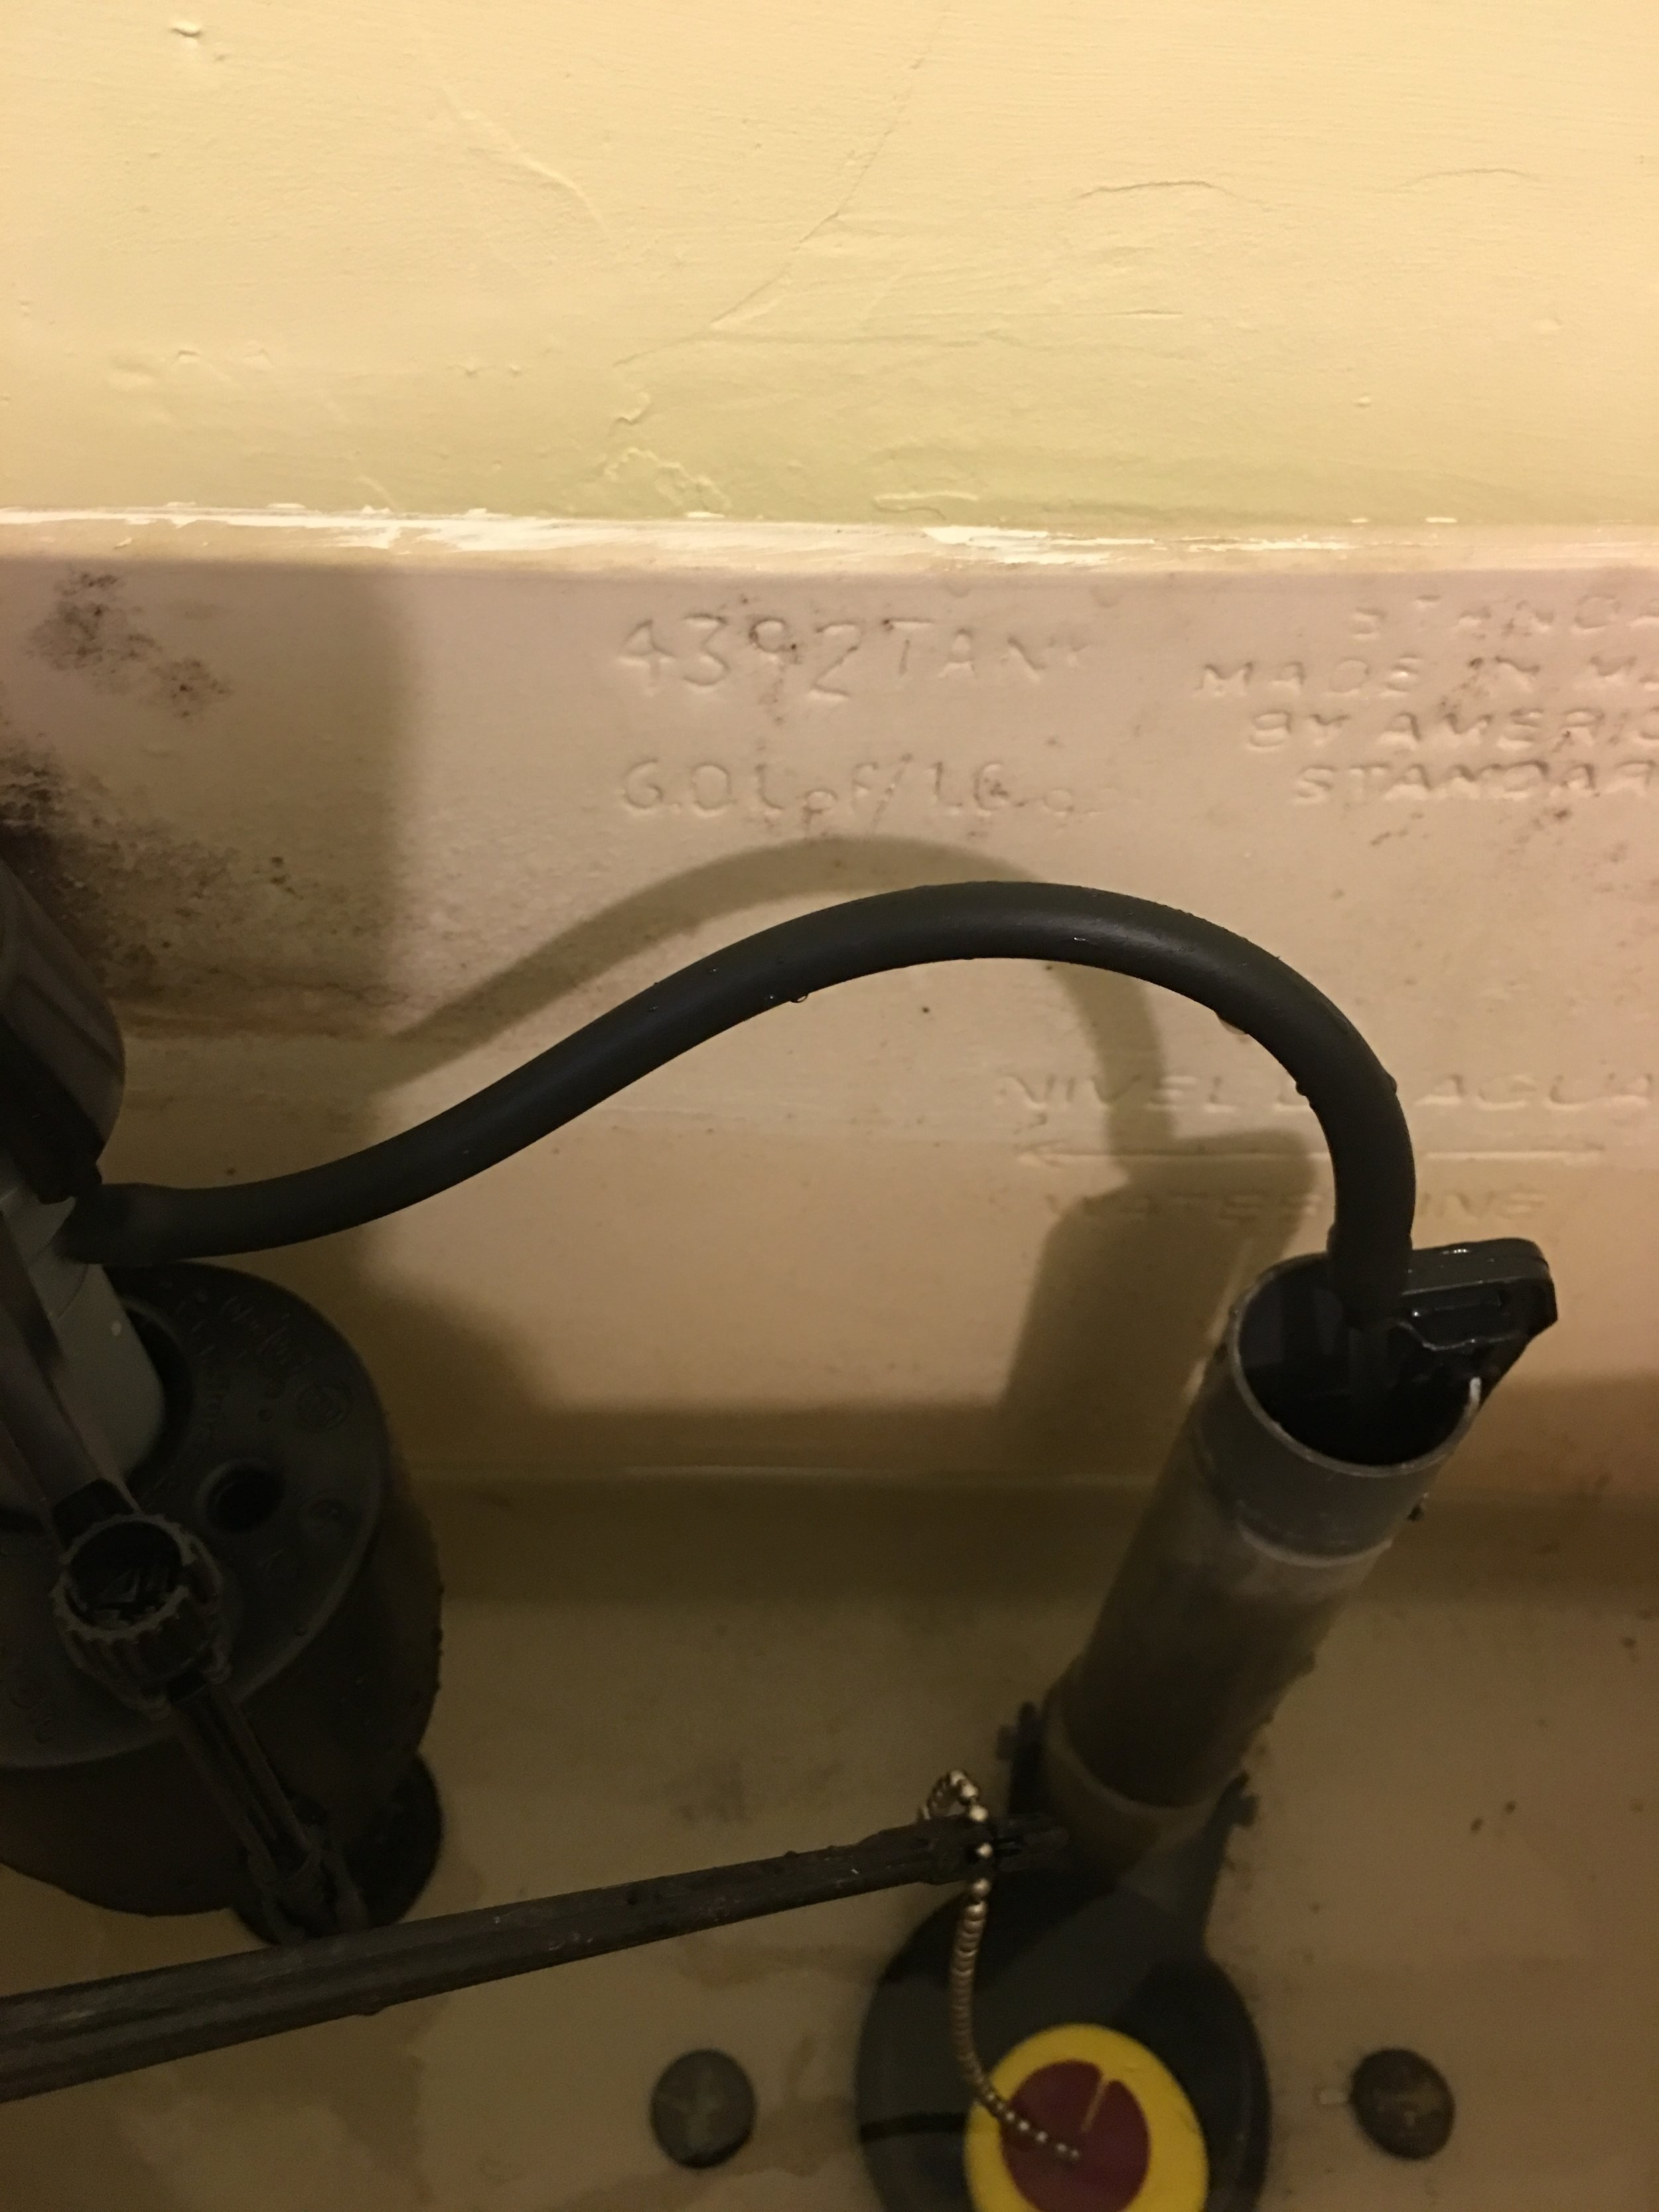 Like:  Do not shove refill tube down overflow pipe.  This may cause significant water waste.   There will be no shoving of anything down your pipes...